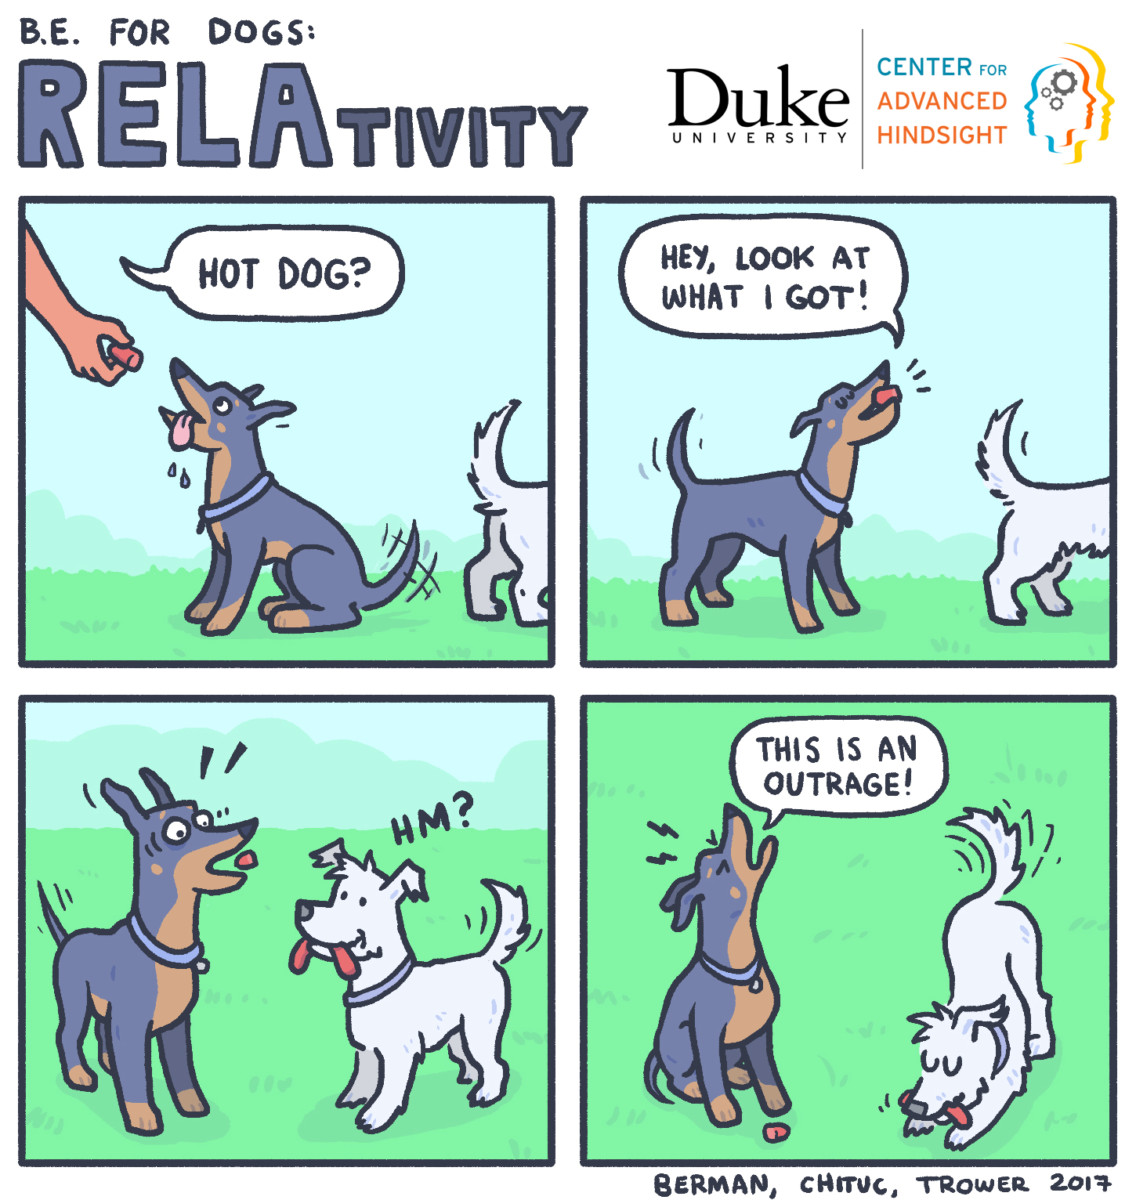 Relativity | Behavioral economics | Duke university